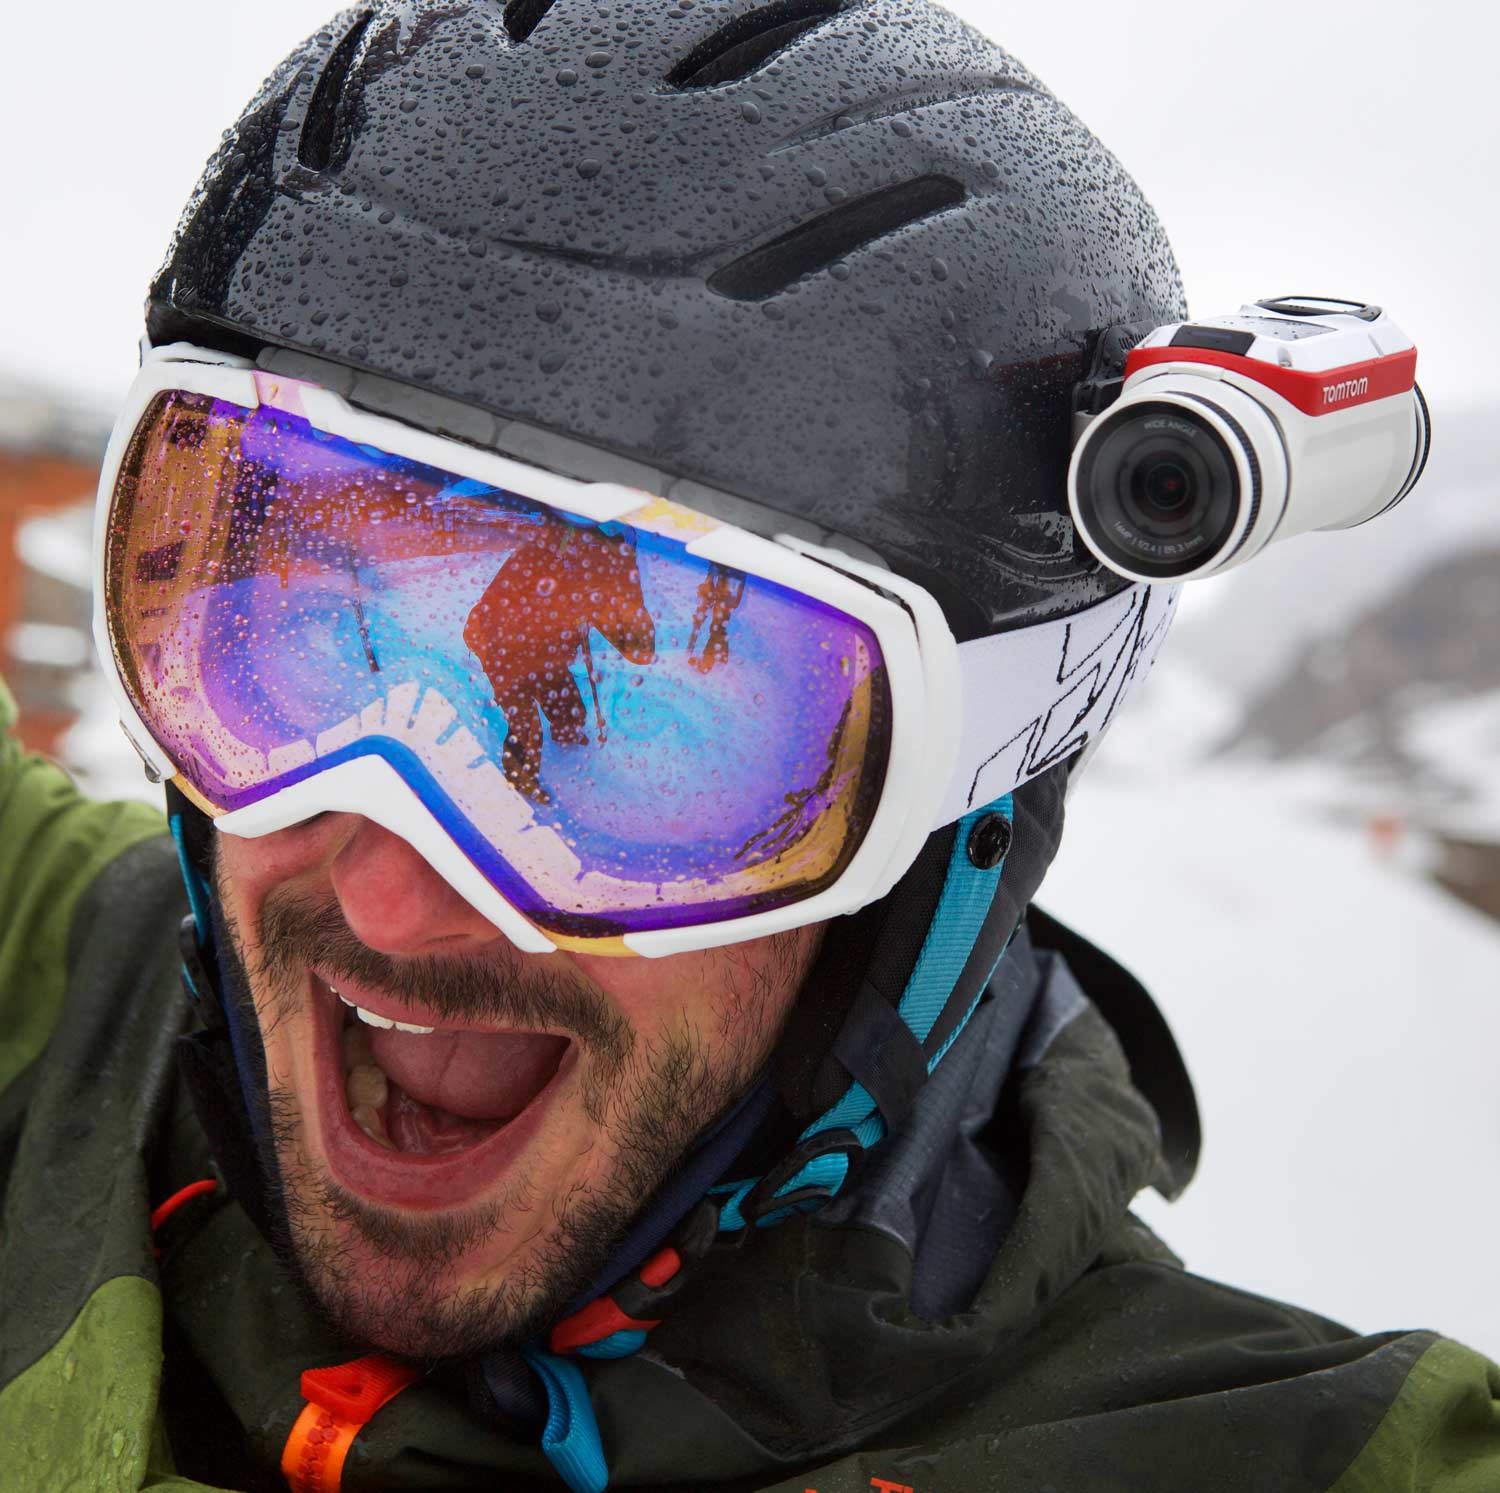 Tomtom Bandit Action Camera Review